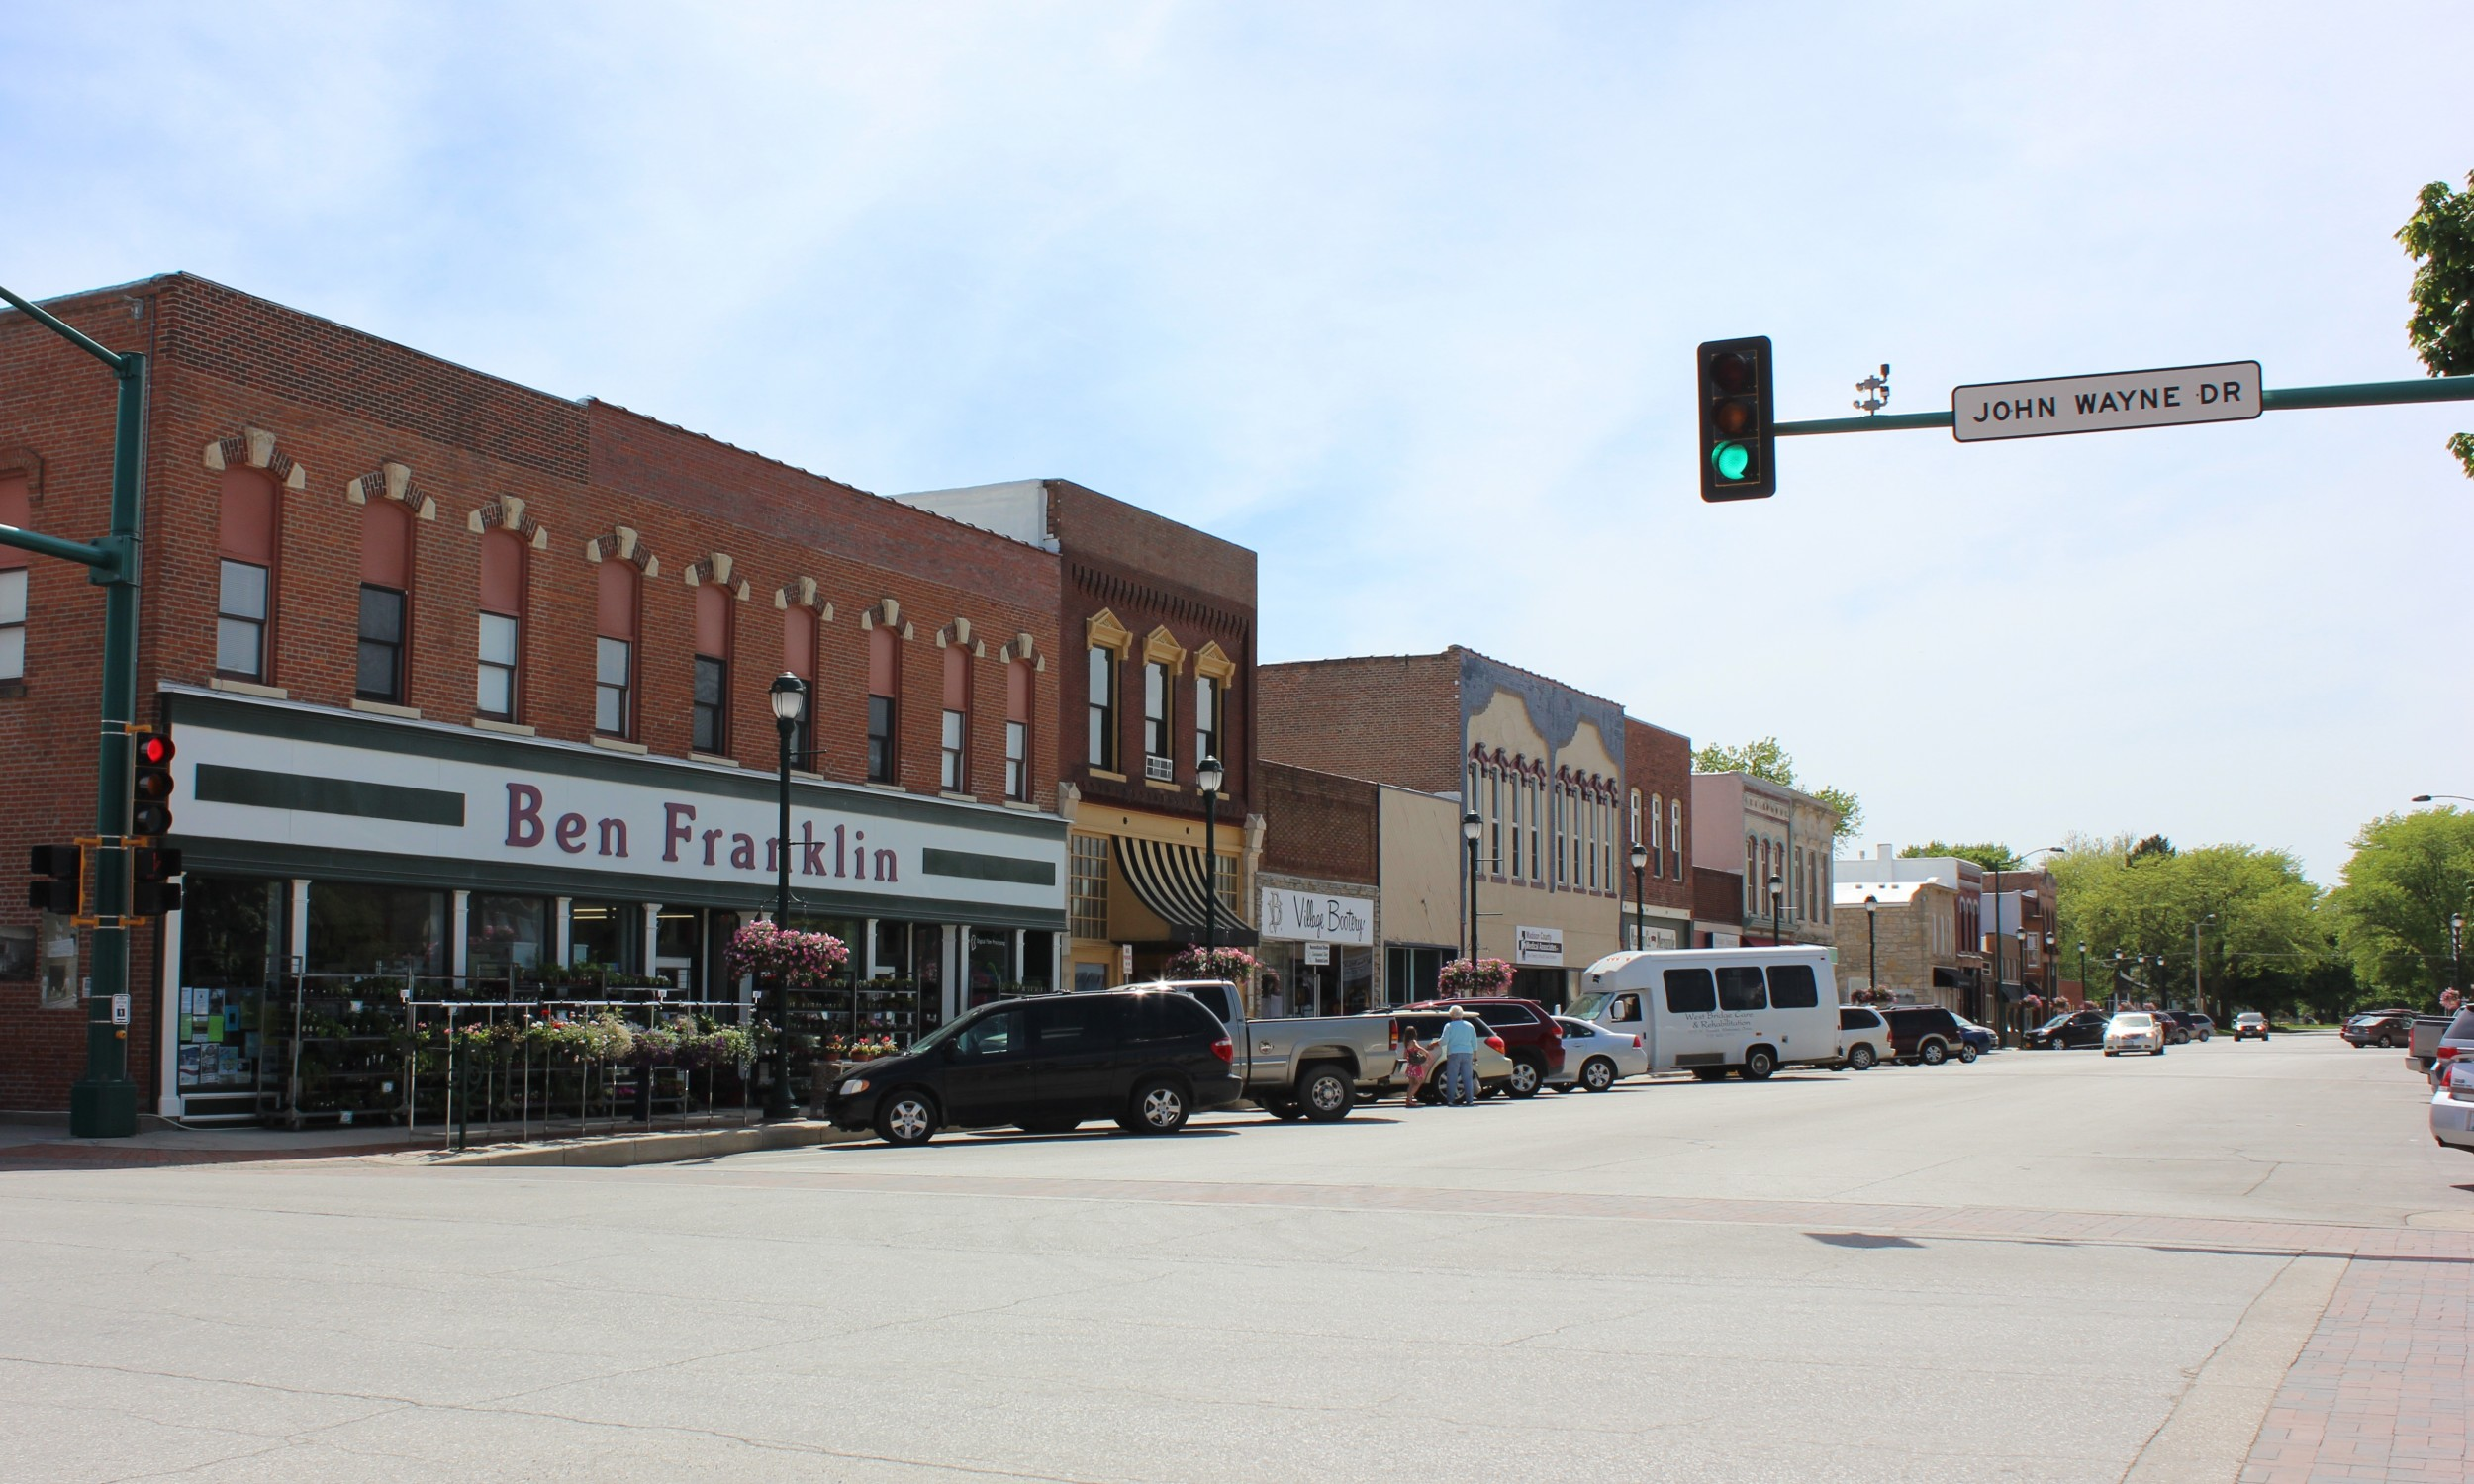 John Wayne Drive on the Winterset town square.